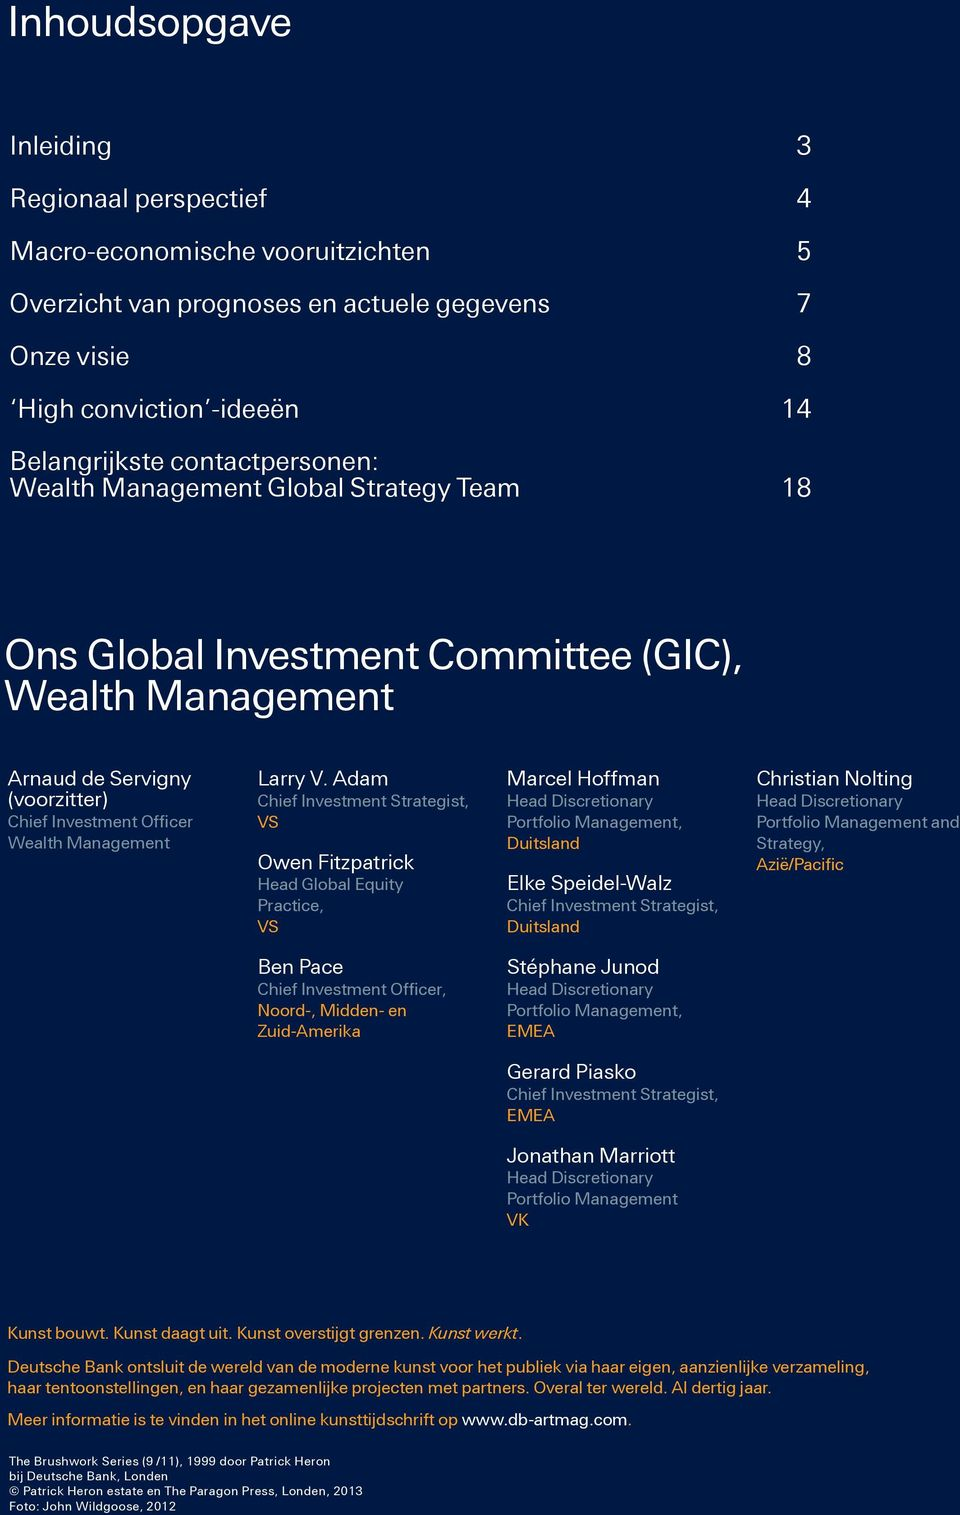 Adam Chief Investment Strategist, VS Owen Fitzpatrick Head Global Equity Practice, VS Marcel Hoffman Head Discretionary Portfolio Management, Duitsland Elke Speidel-Walz Chief Investment Strategist,